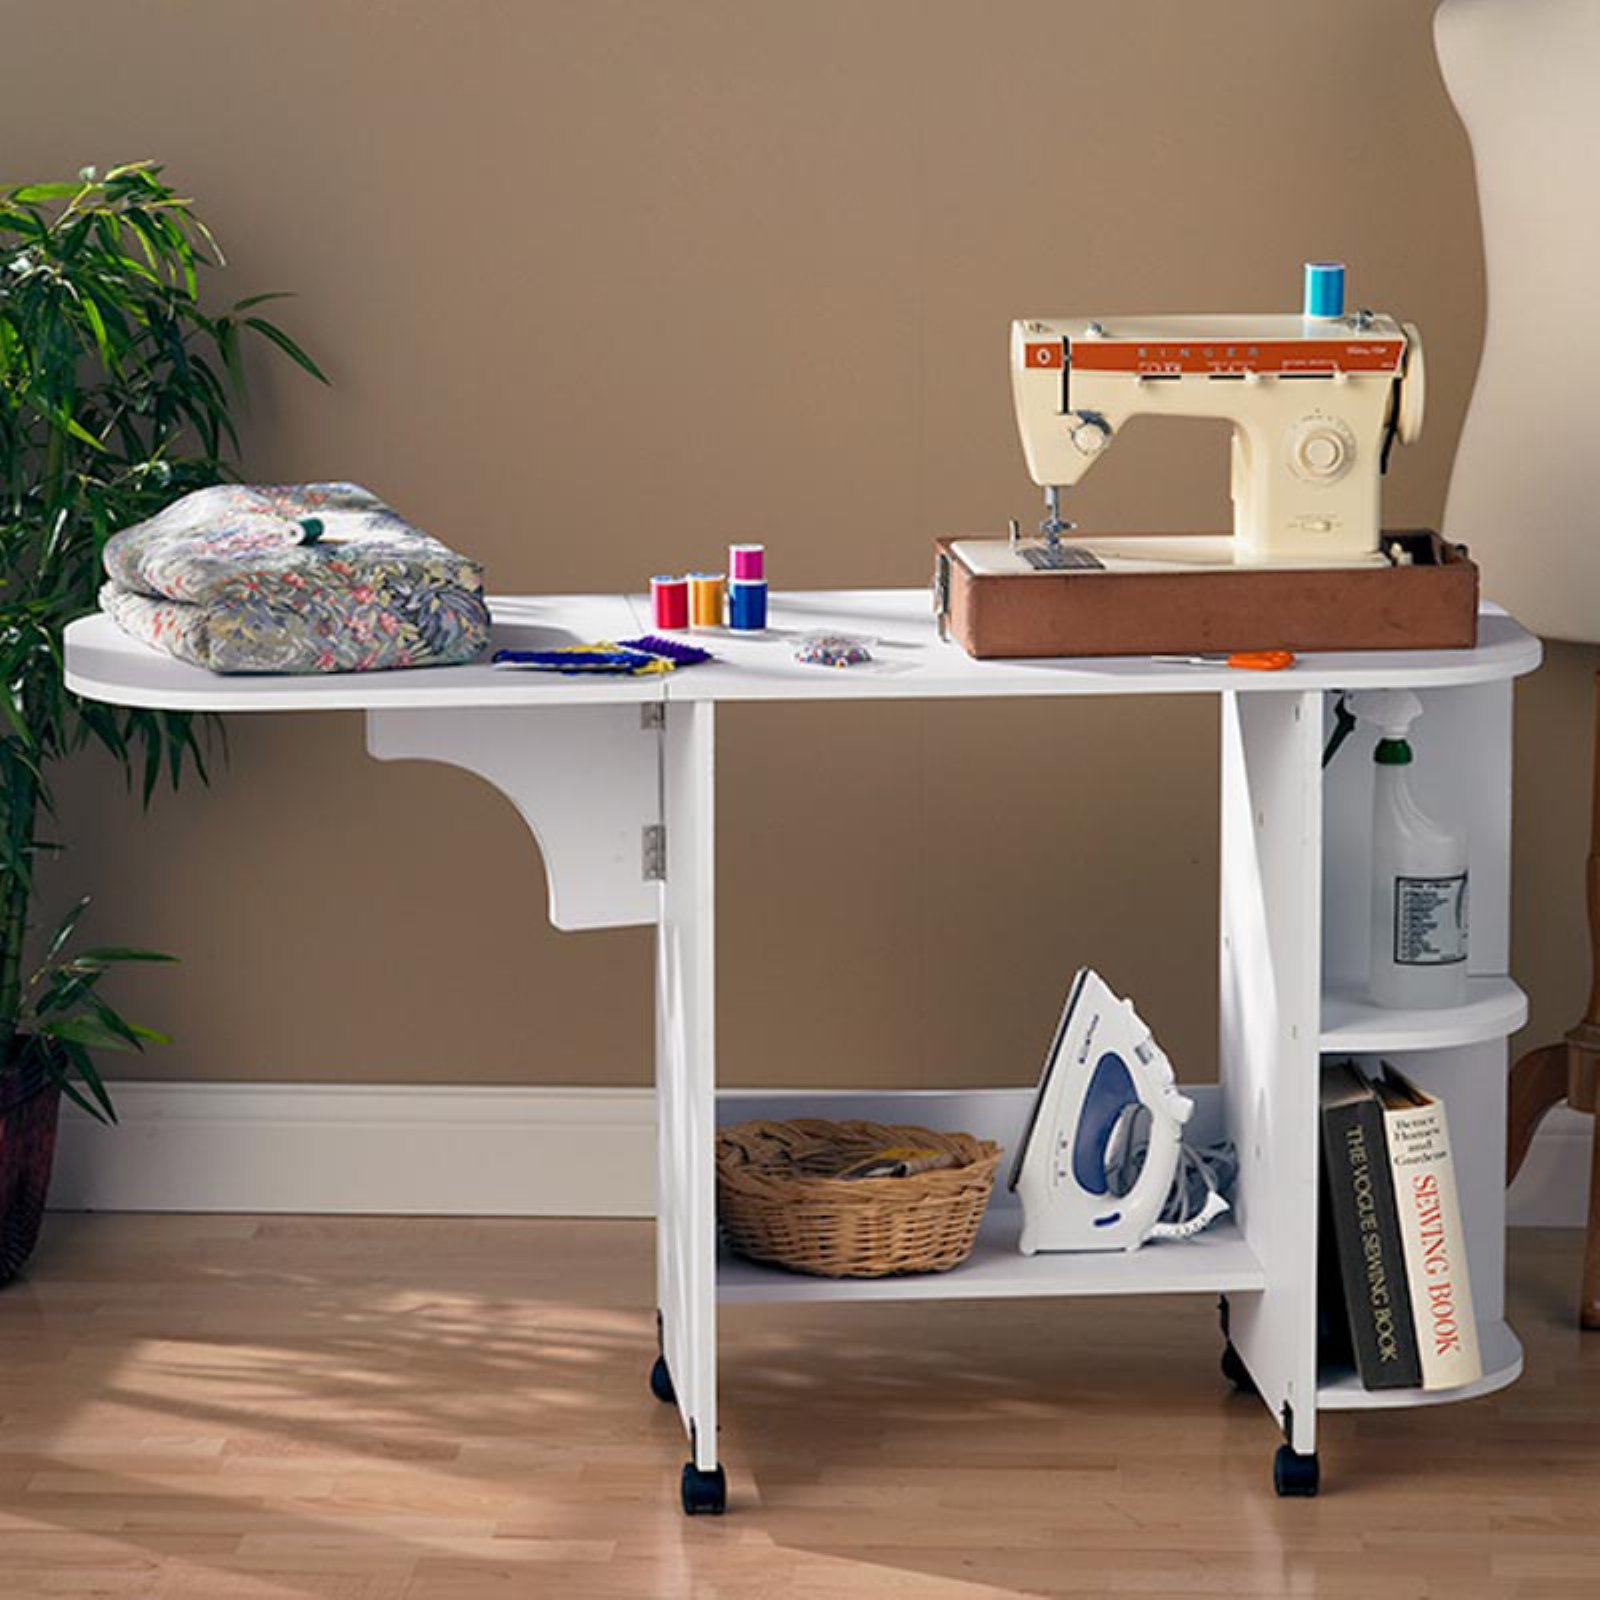 Genial Southern Enterprises Expandable Rolling Sewing Table U0026 Craft Station,White    Walmart.com